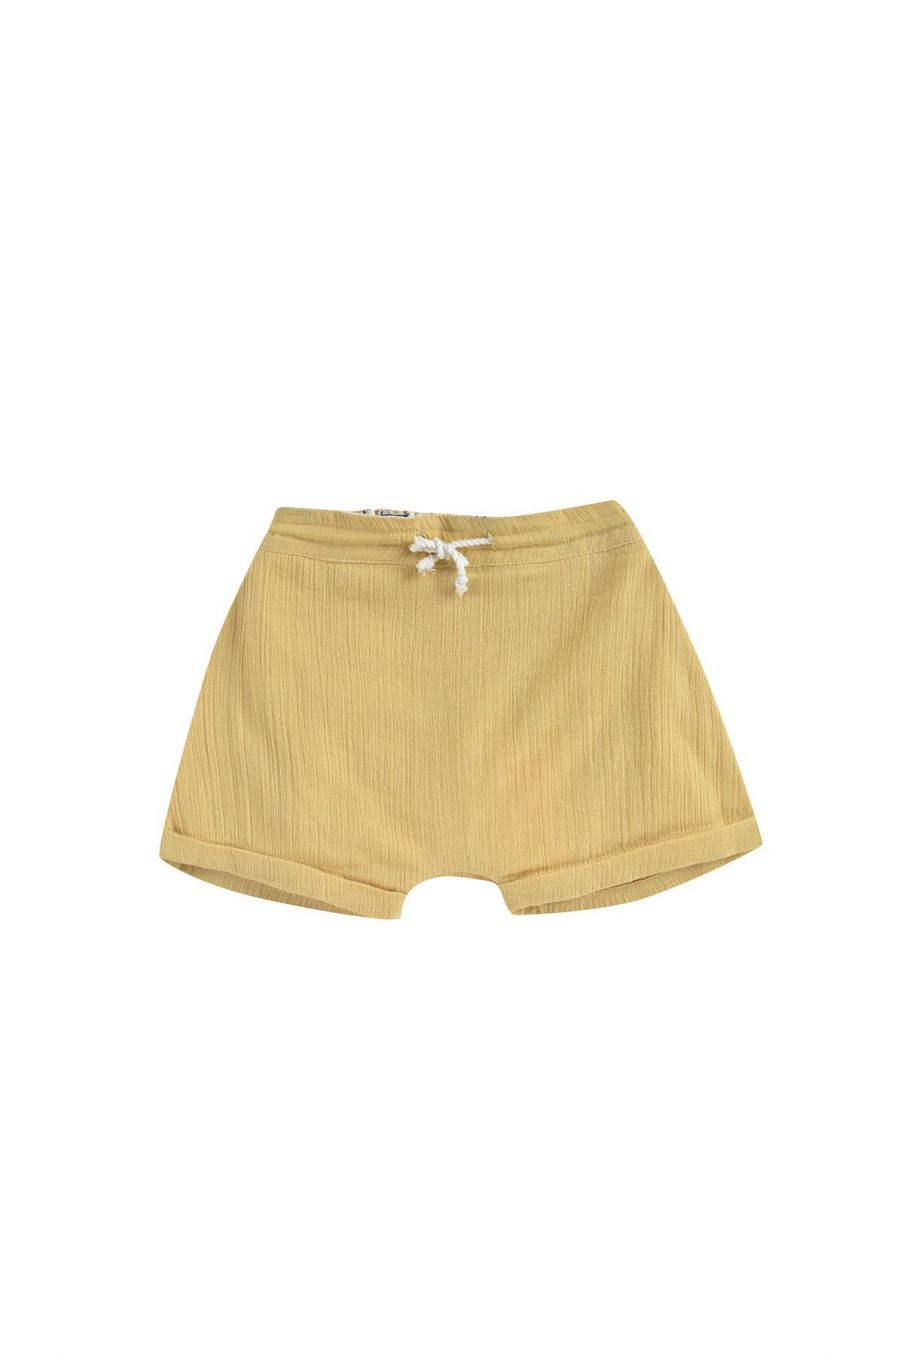 boheme chic vintage short bébé garcon aliki soft honey